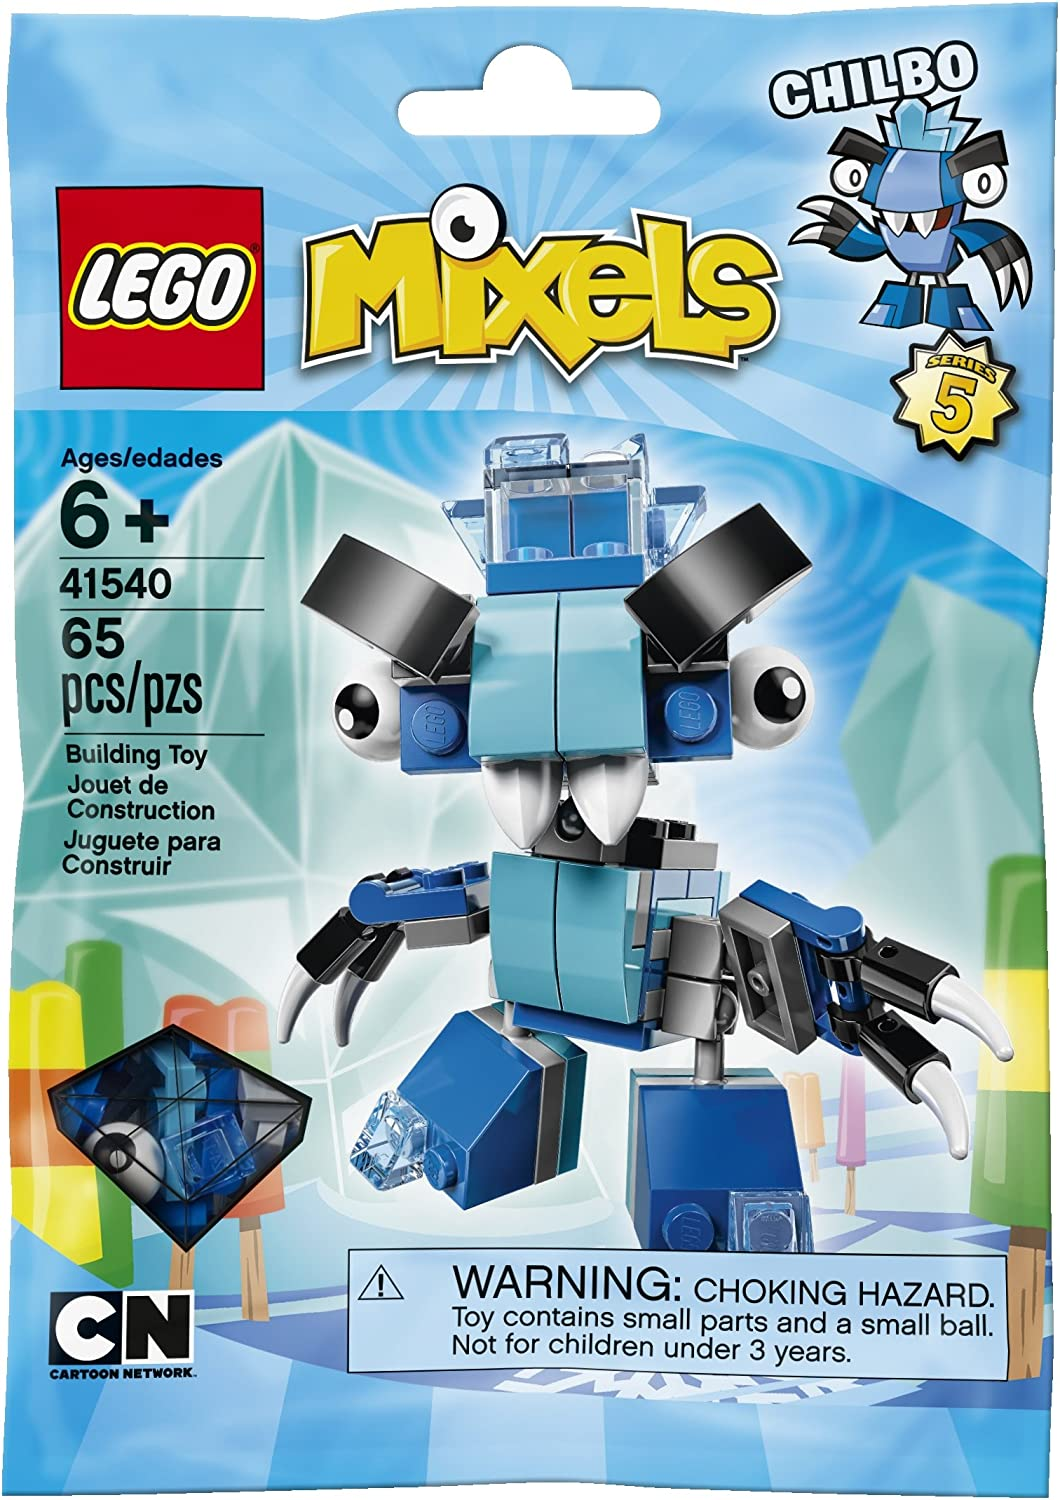 LEGO Mixels Chilbo Building Kit